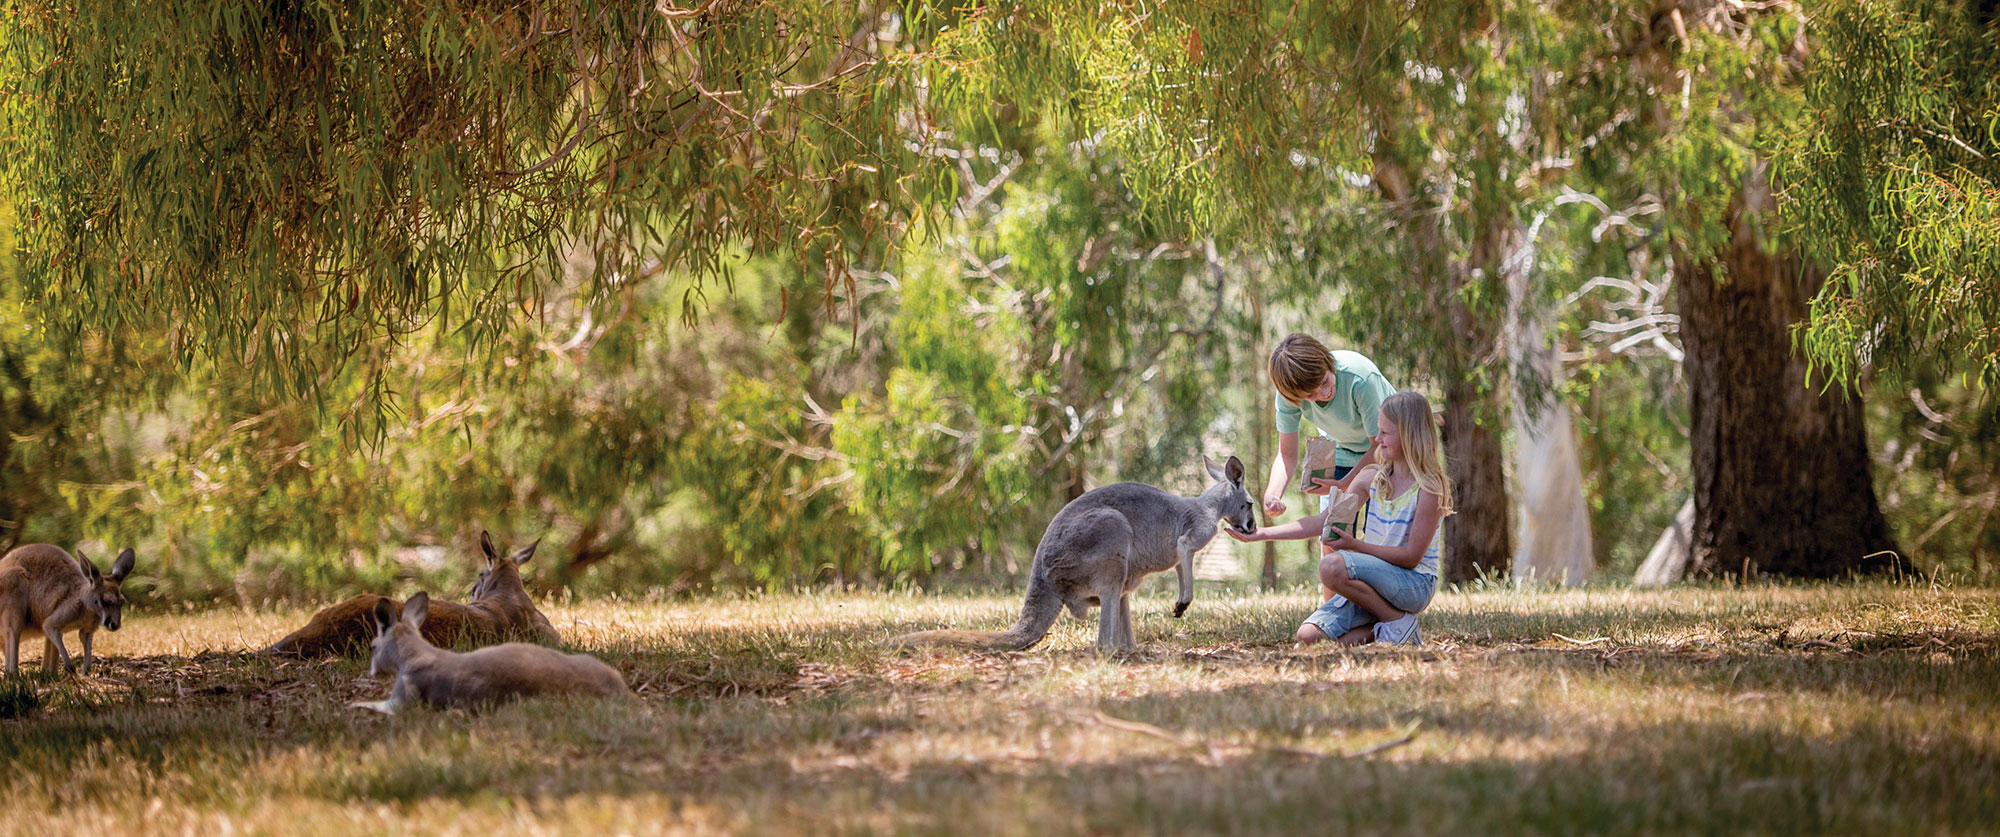 Family Holidays South Australia Package - Adelaide